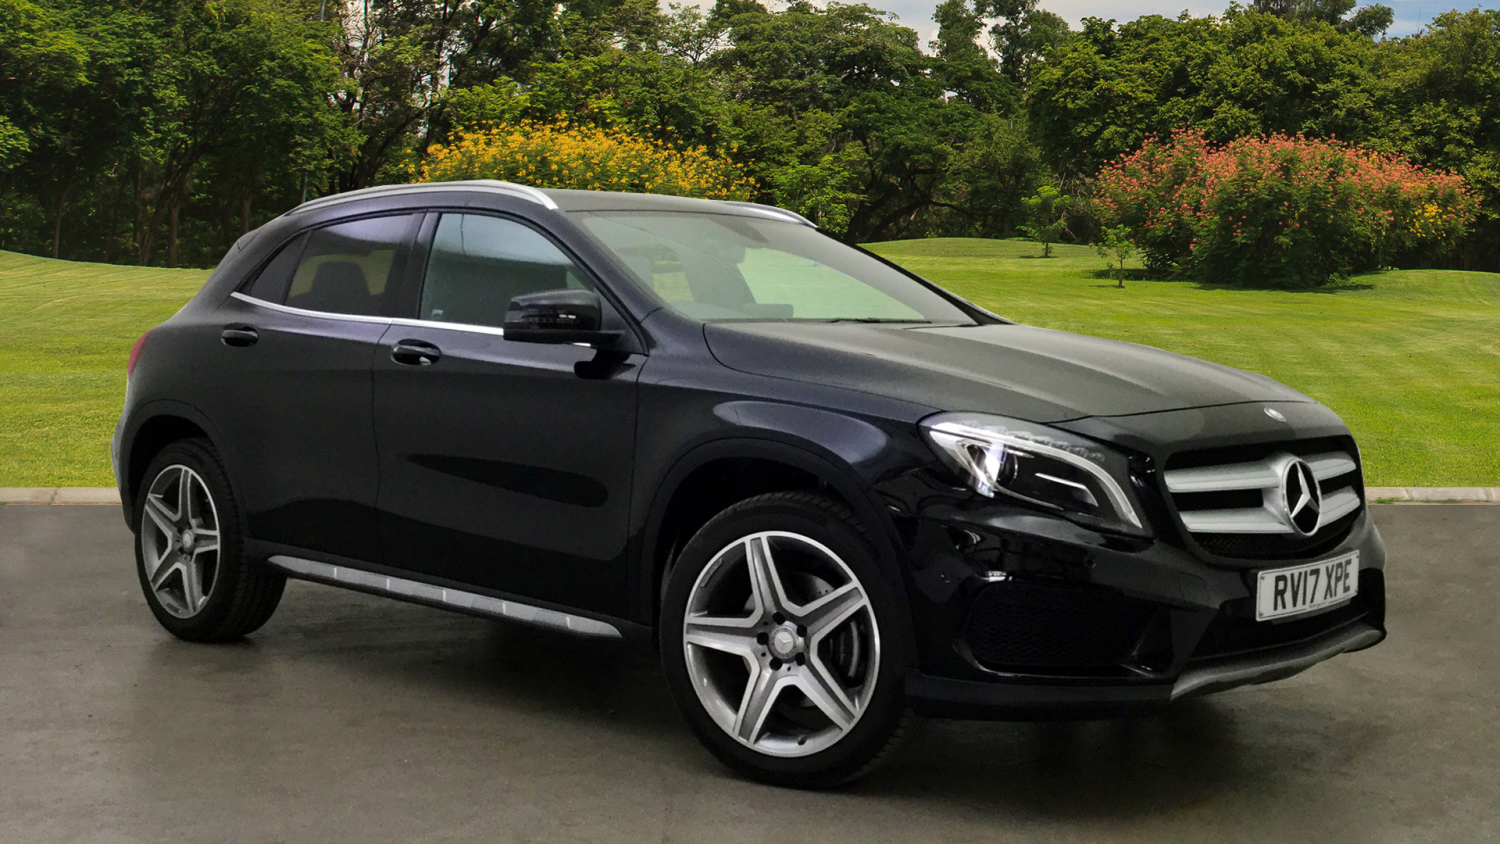 Used And Pre Owned Cars And Mercedes Benz In Oklahoma City